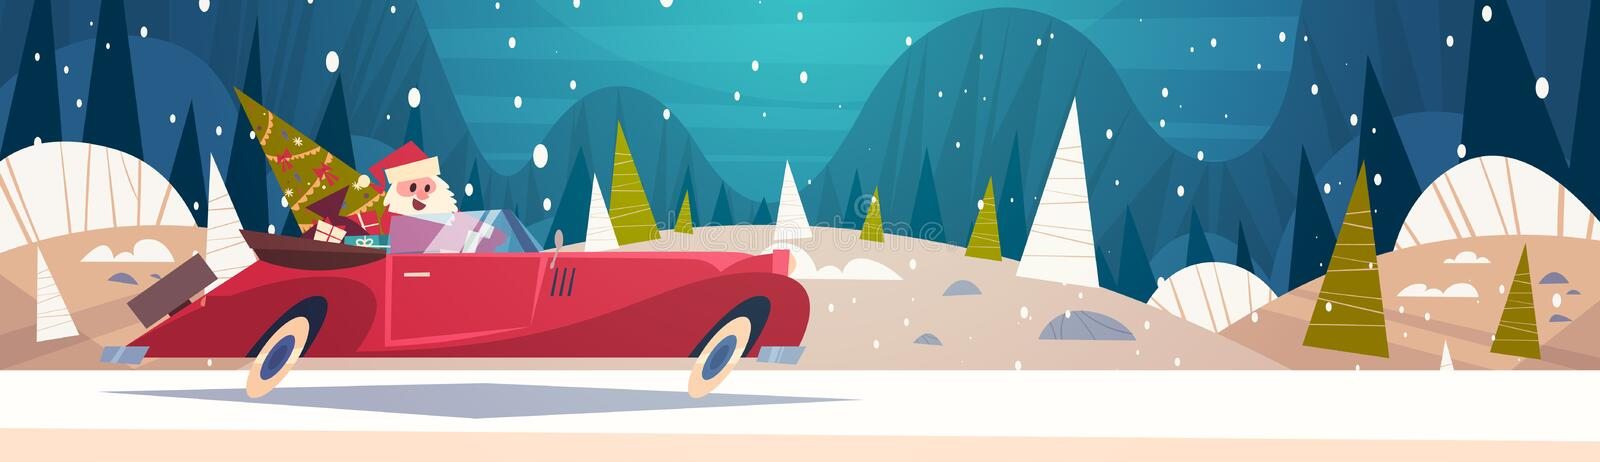 Santa Driving Retro Car With Green Tree And Presents In Winter Forest Merry Christmas And Happy New Year Poster vector illustration